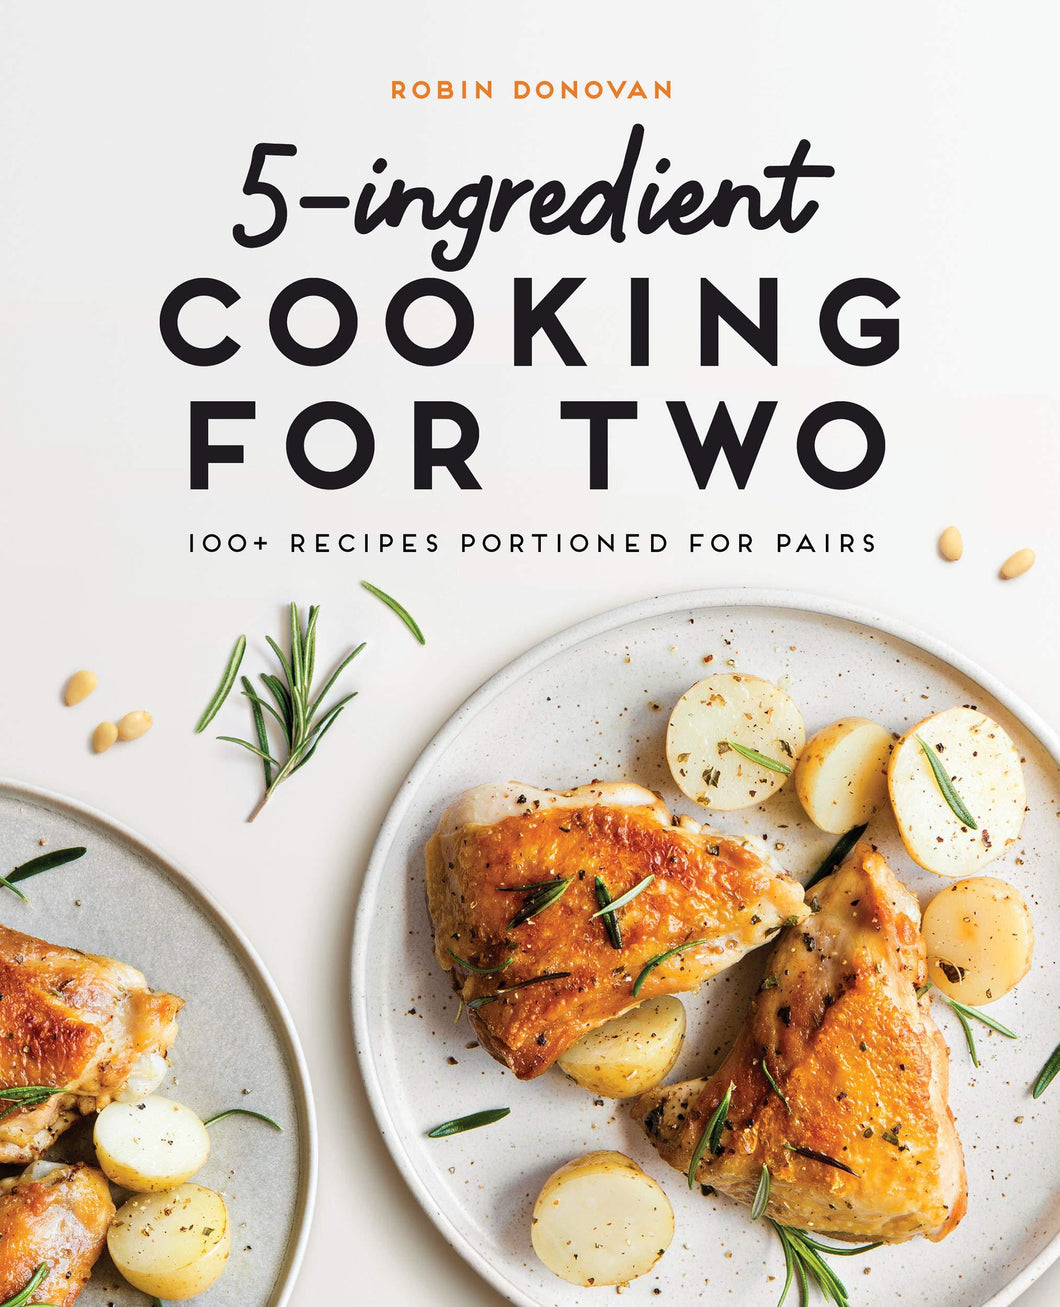 5-Ingredient Cooking for Two: 100 Recipes Portioned for Pairs - Tolerant Planet